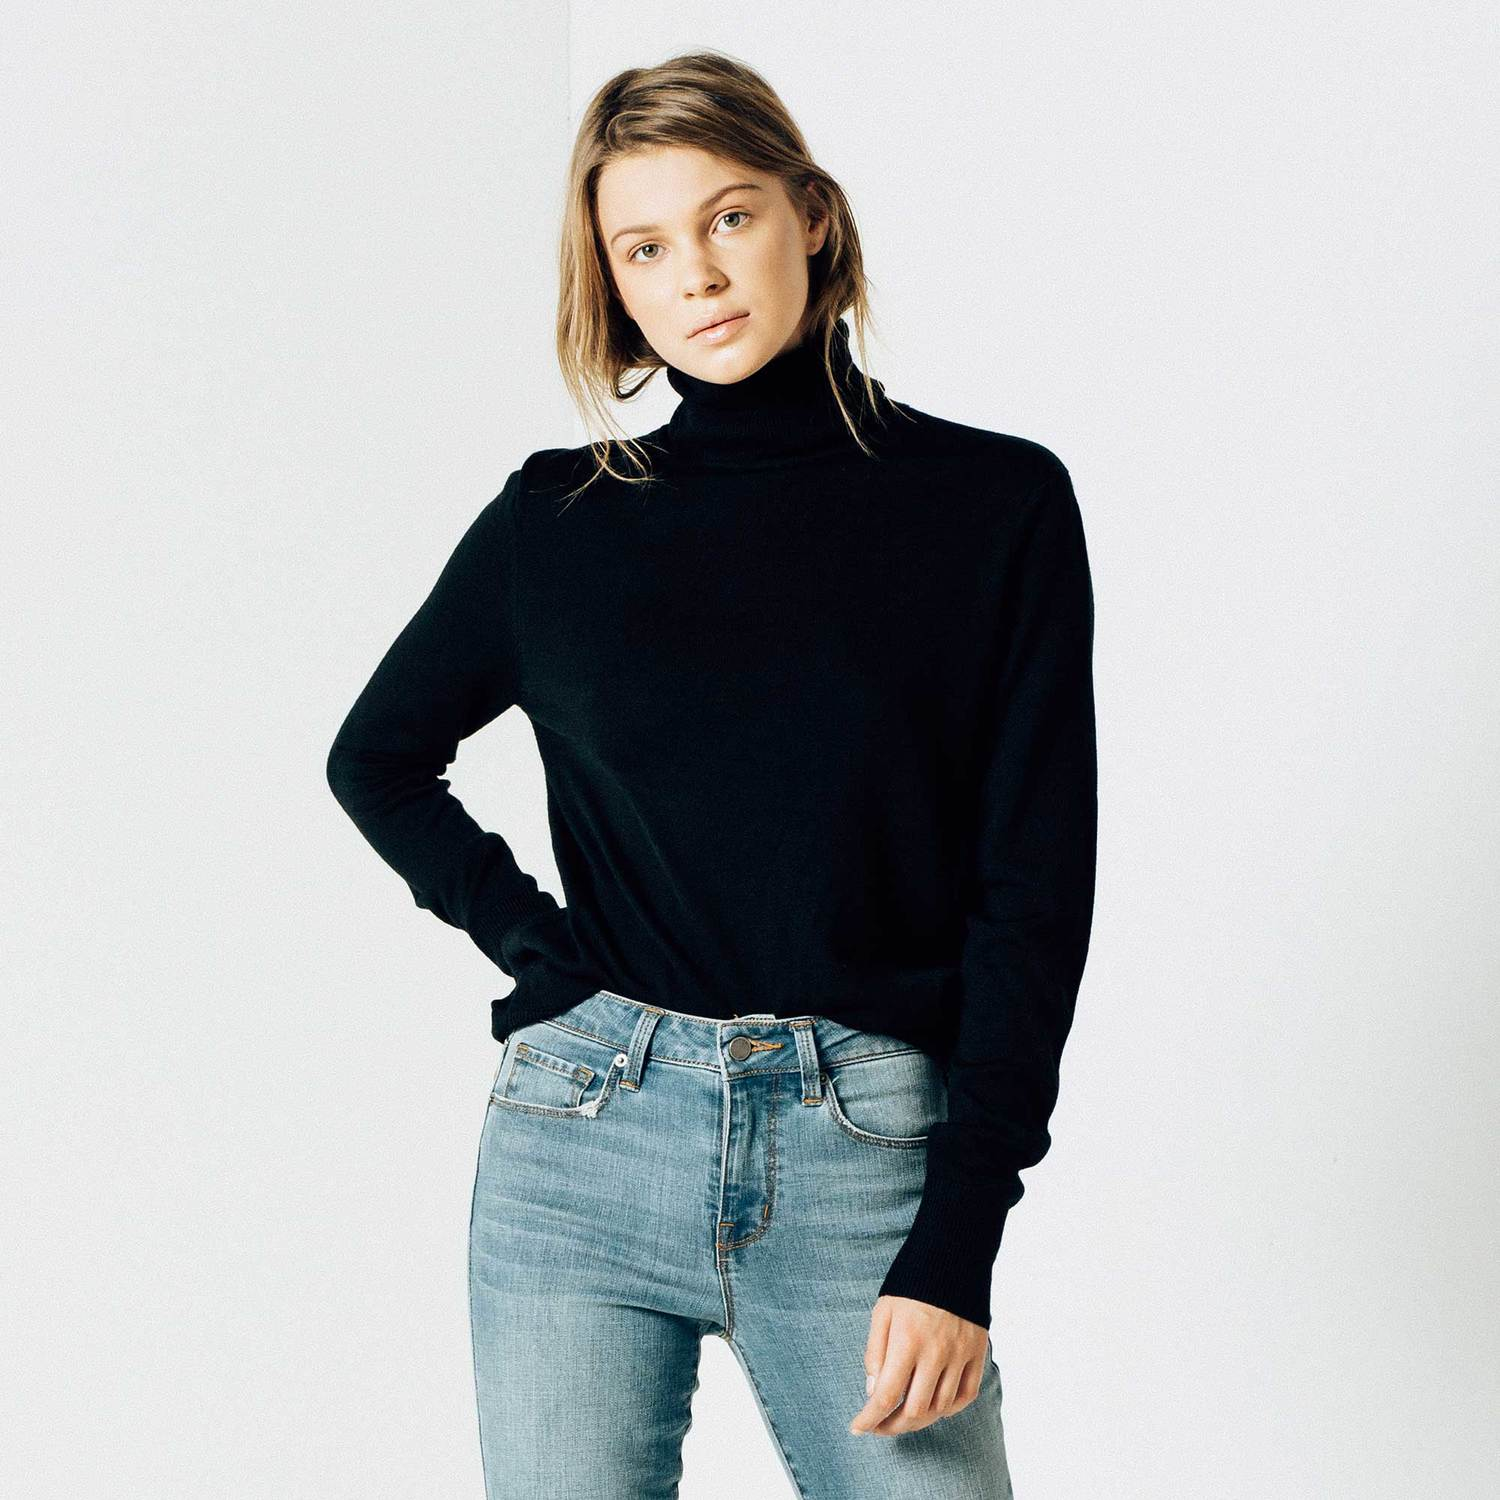 Womens Wool Turtleneck Sweater In Black $90 | DSTLD